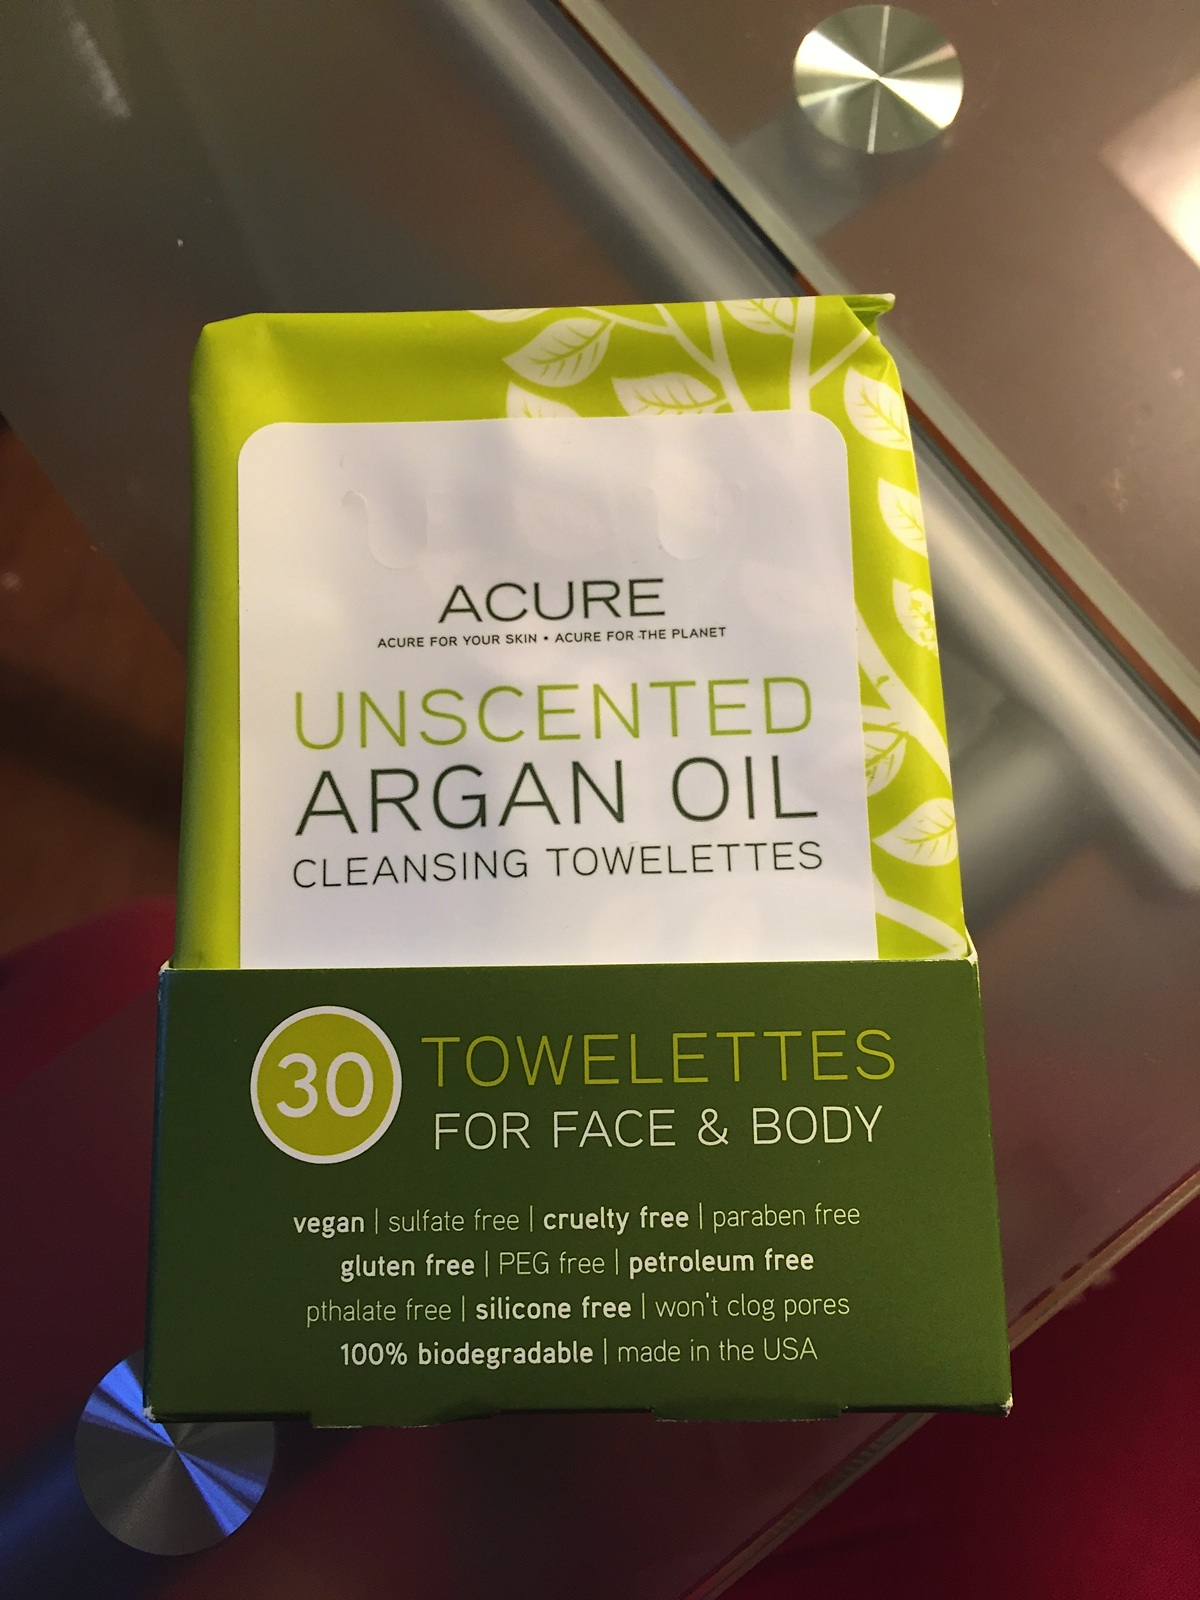 Accure unscented wipes